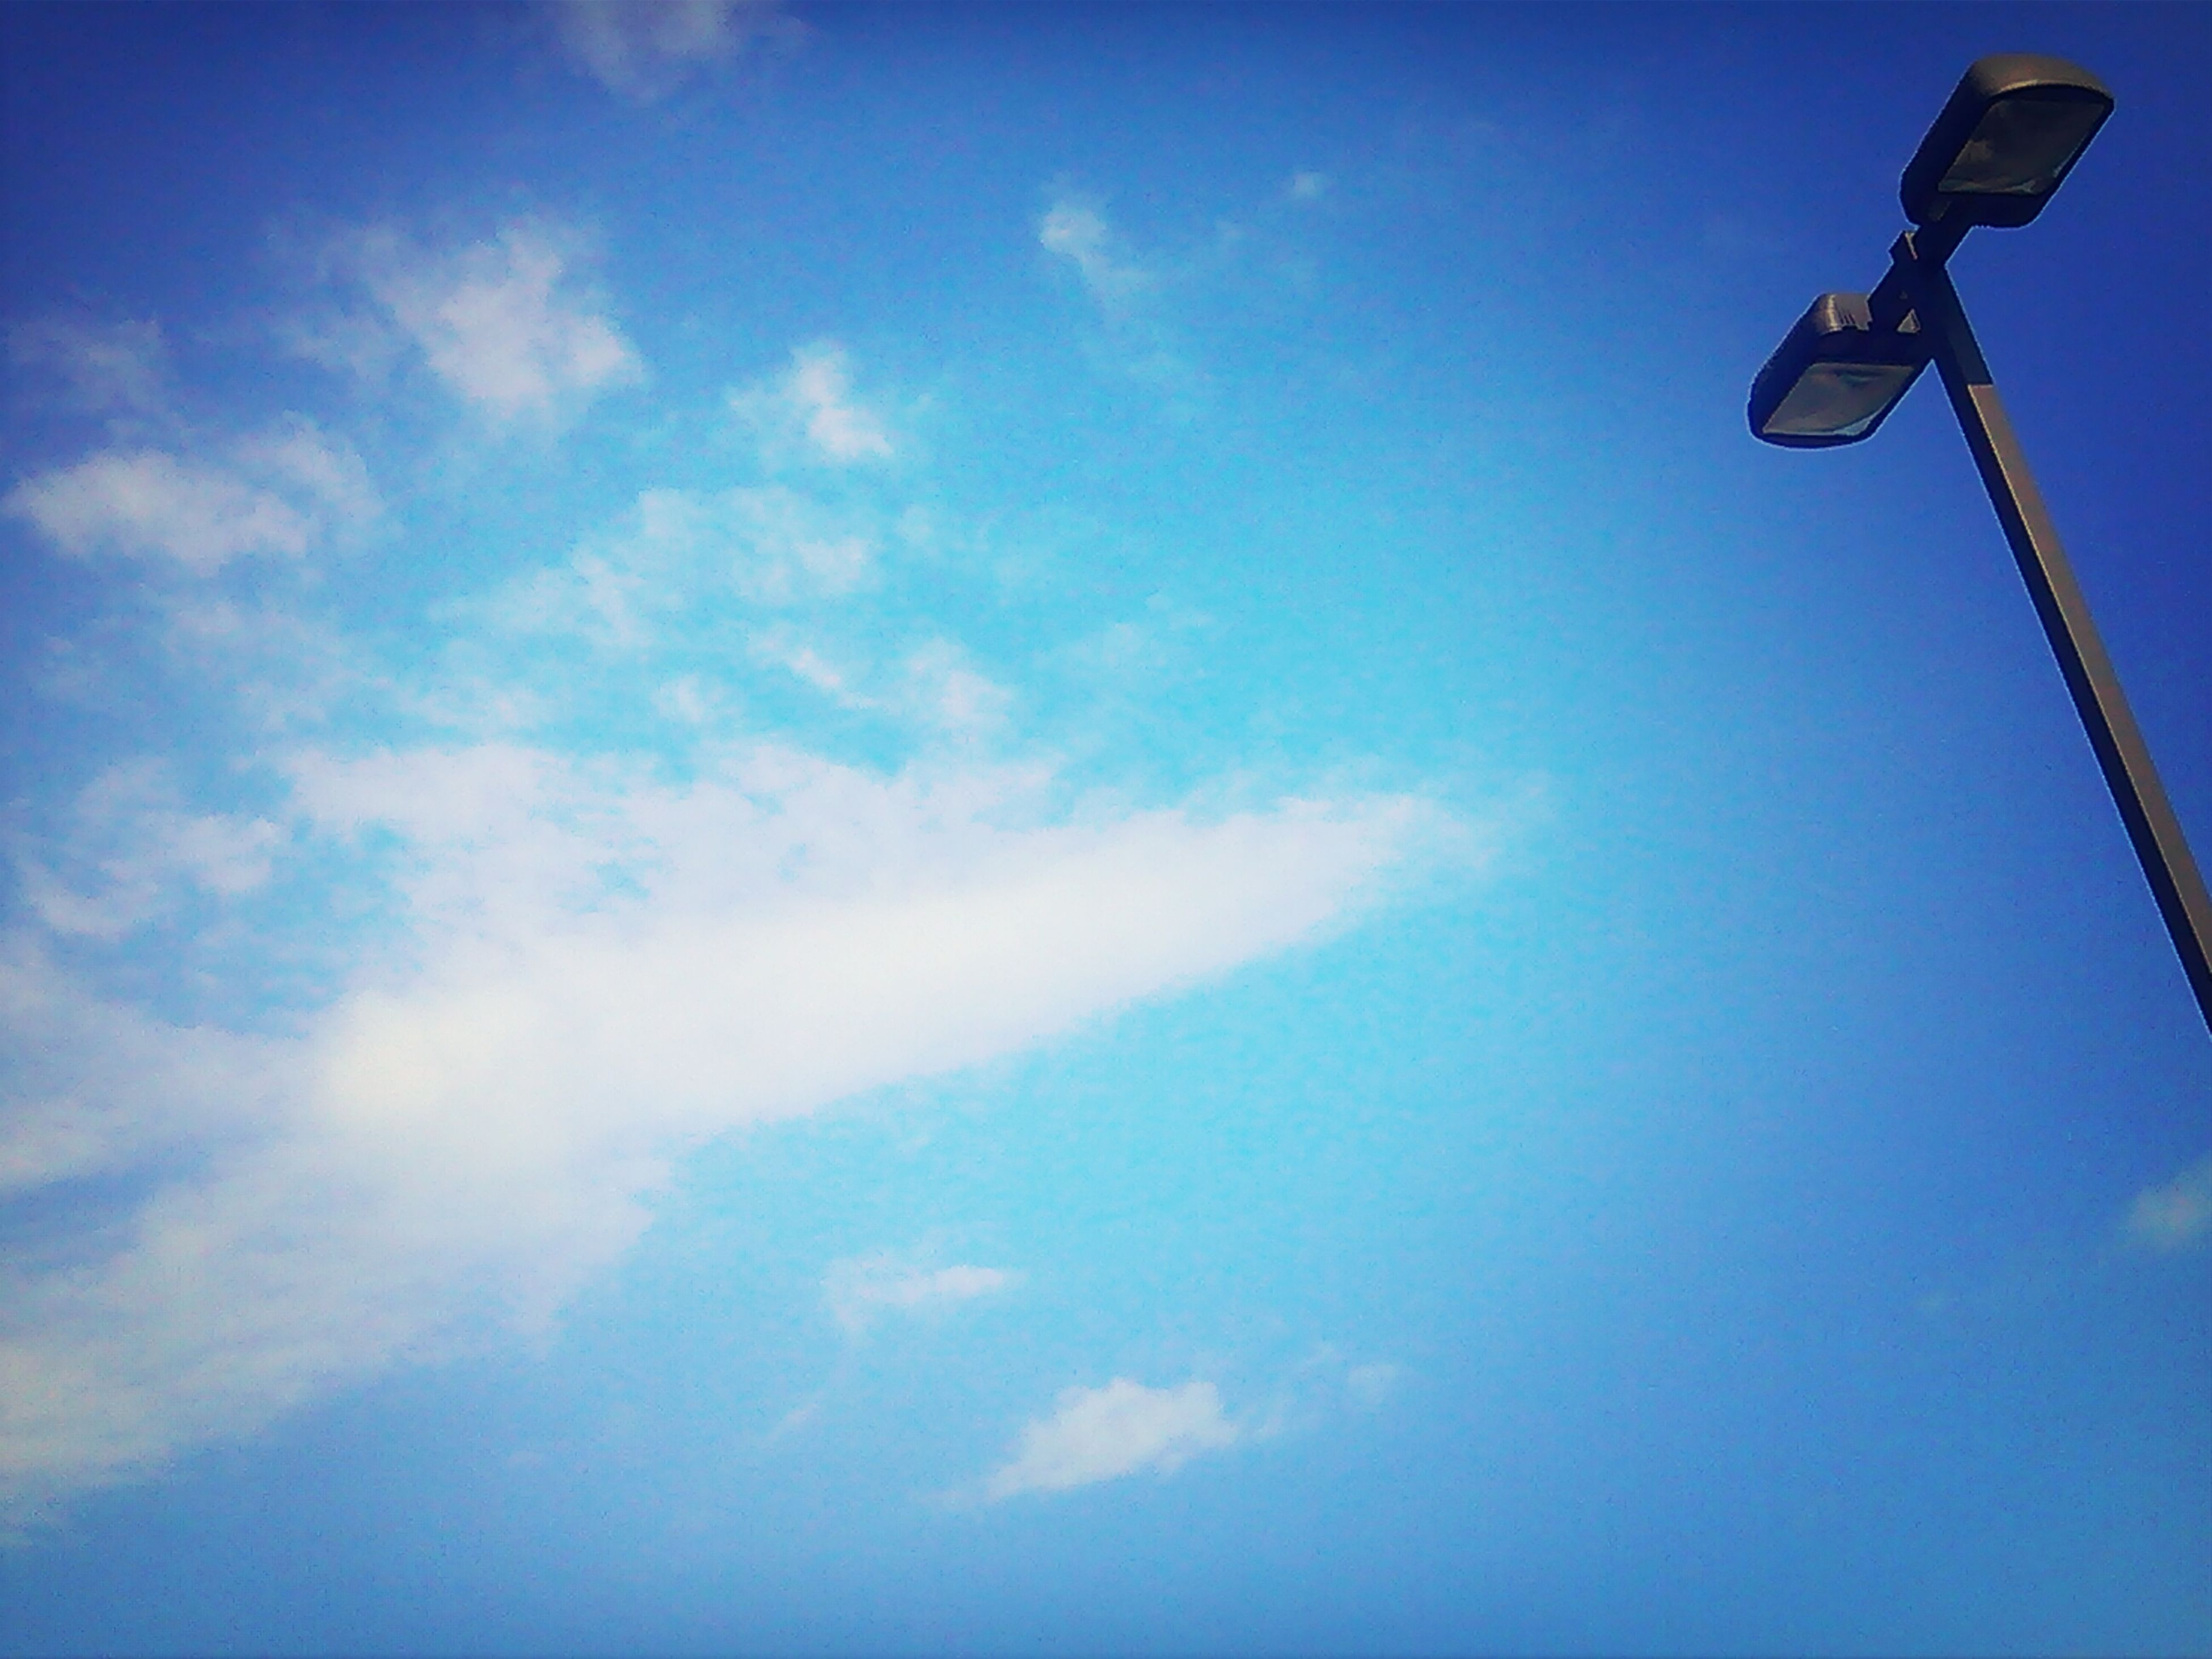 low angle view, blue, sky, cloud - sky, street light, lighting equipment, tranquility, nature, beauty in nature, vapor trail, cloud, outdoors, scenics, electricity, no people, day, tranquil scene, technology, pole, copy space